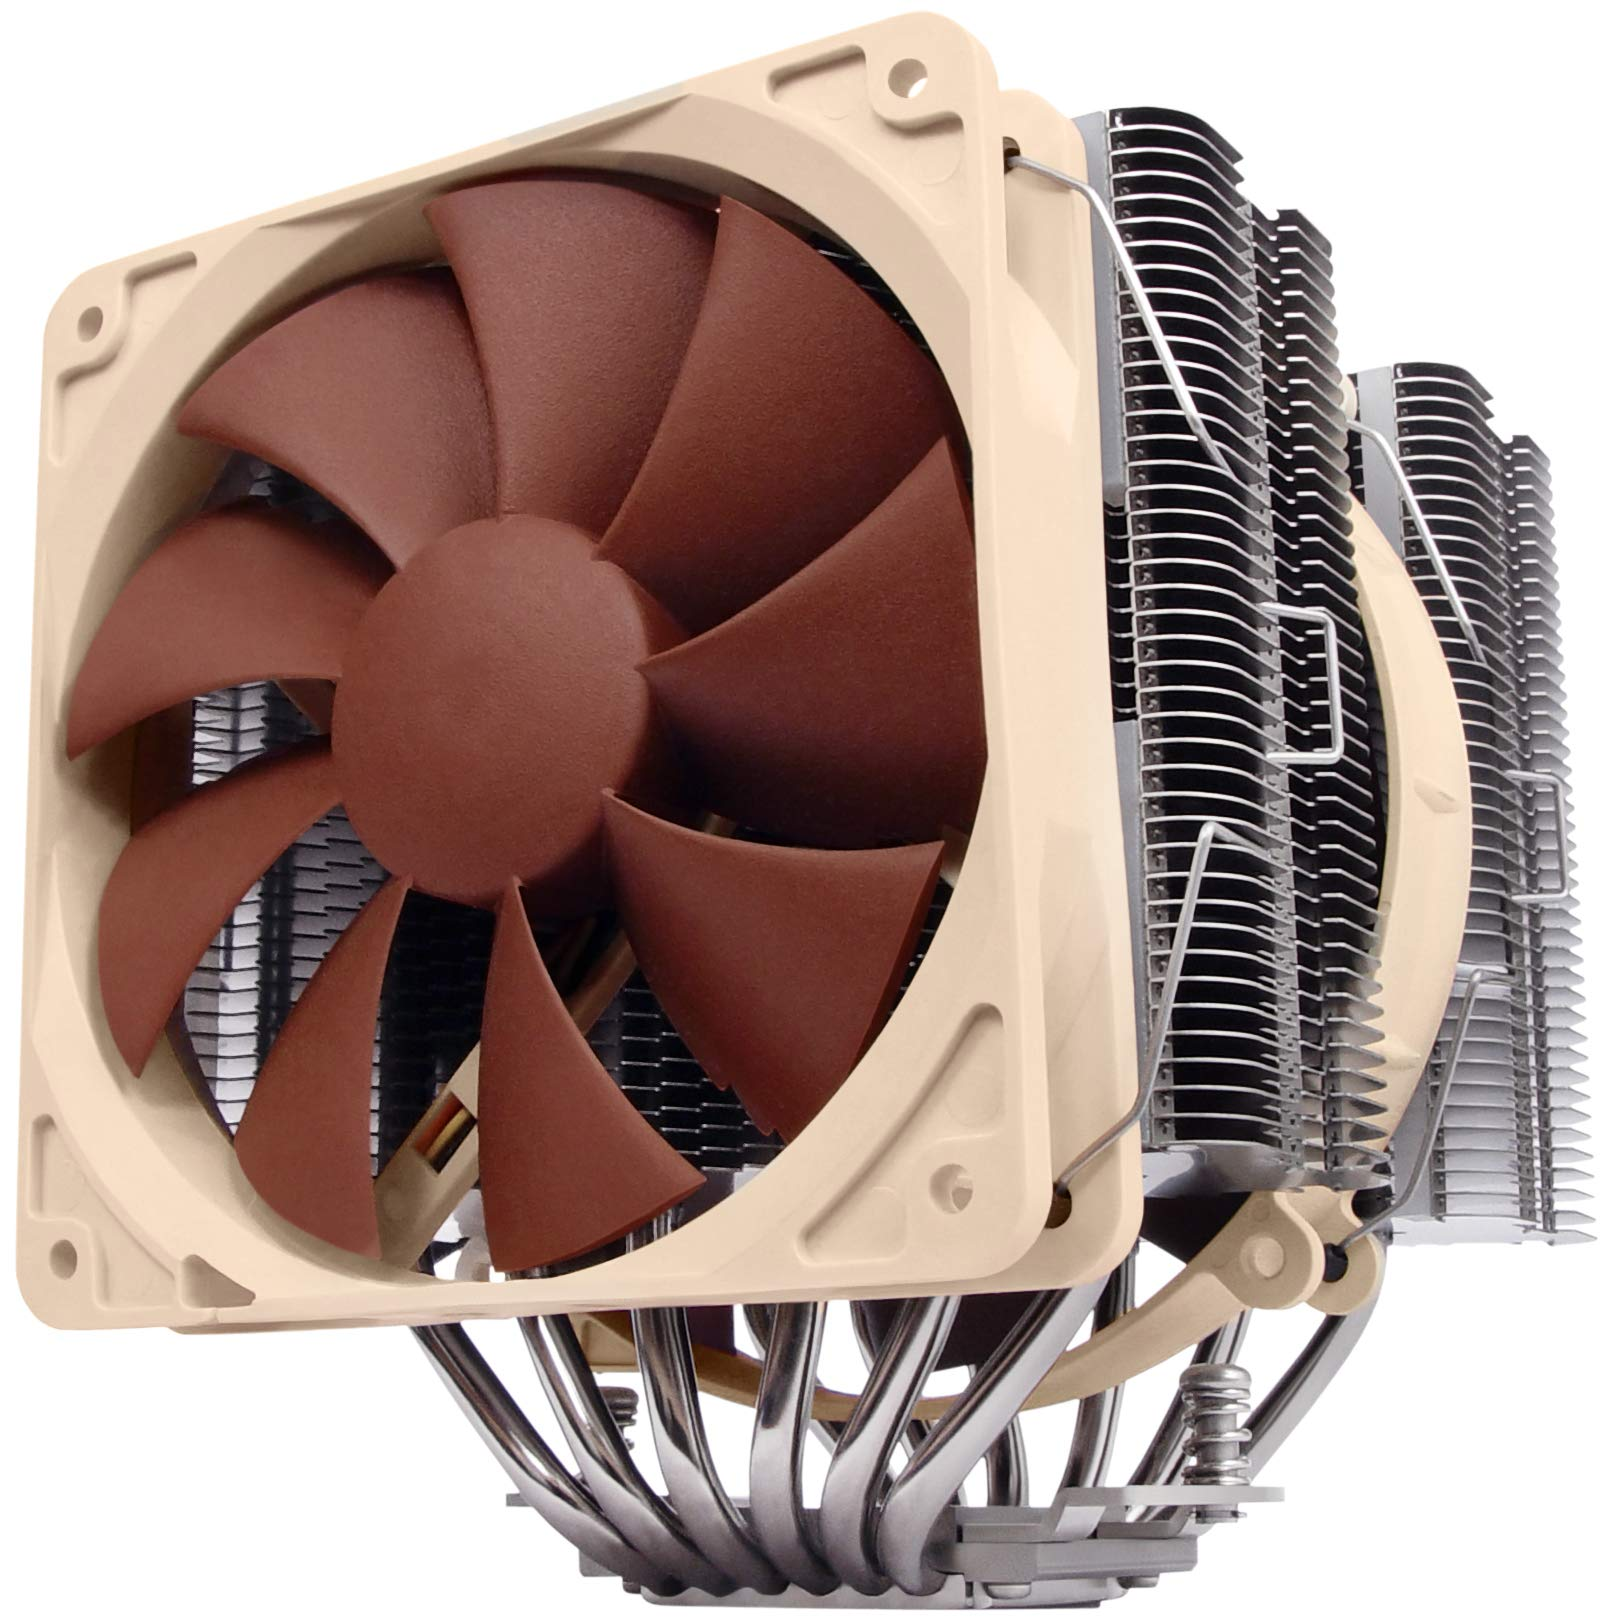 Noctua NH-D14, Premium CPU Cooler with Dual NF-P14 PWM and NF-P12 PWM Fans (Brown) by NOCTUA